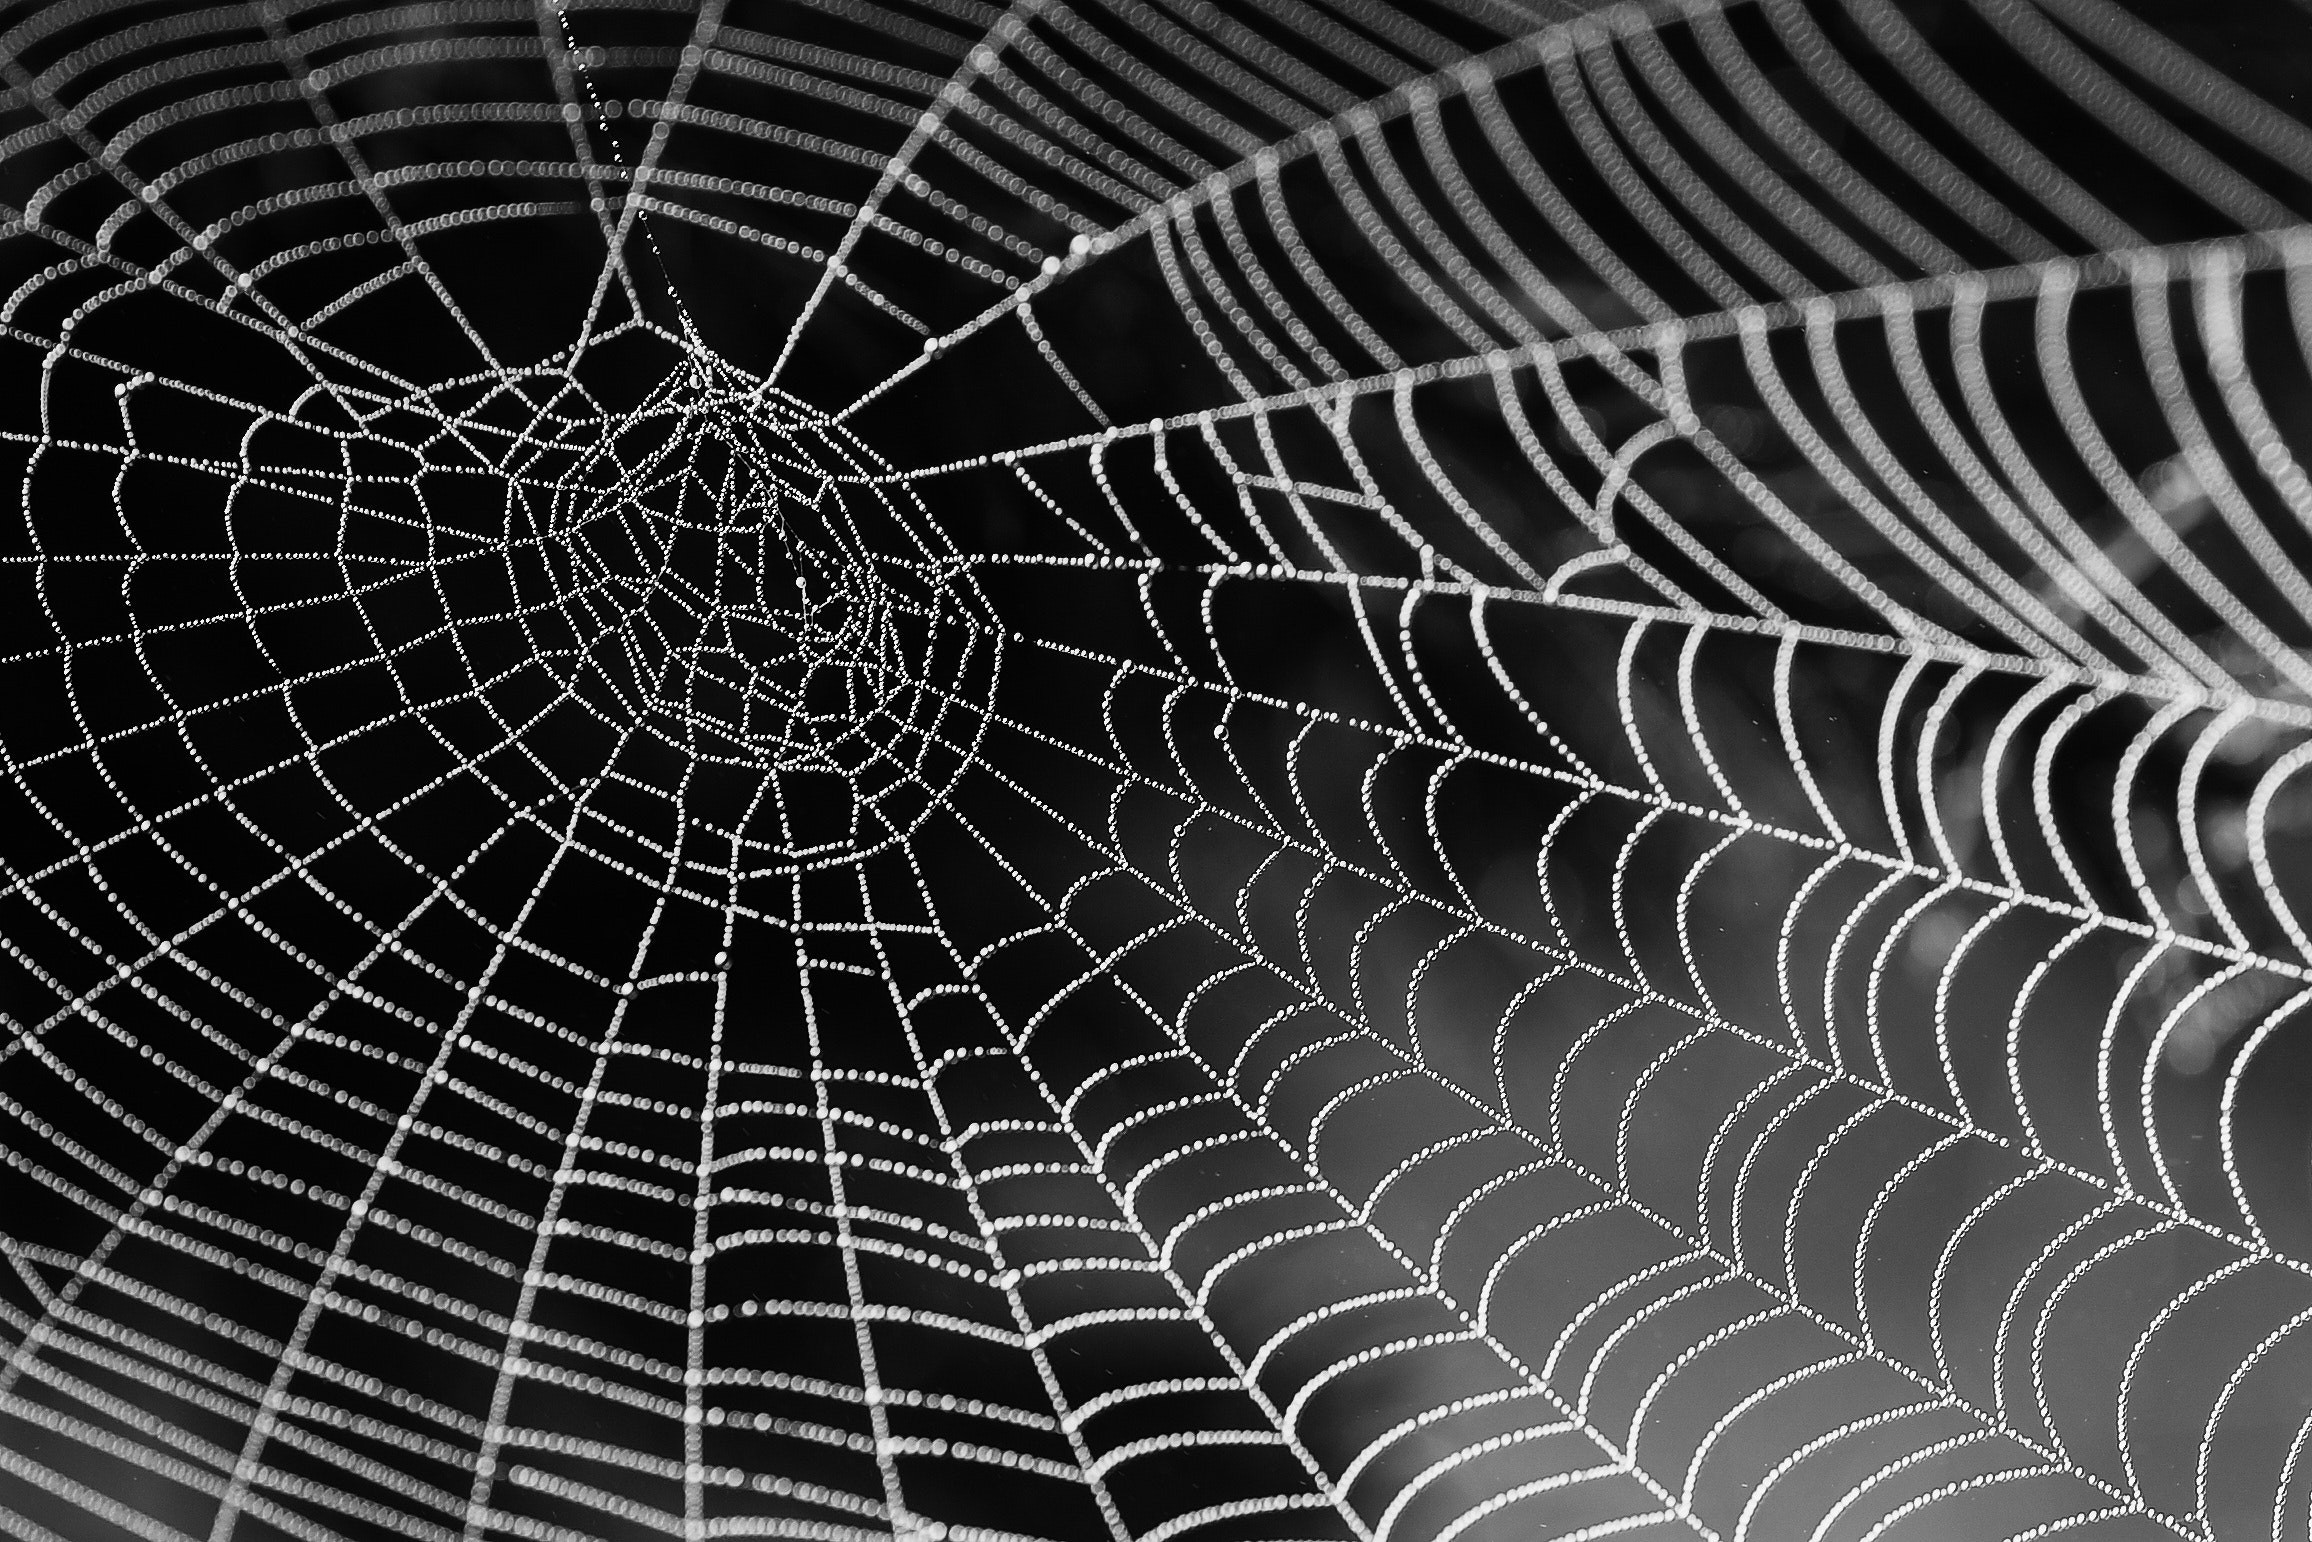 /the-crypto-spider-web-thesis-a69bdba0678 feature image